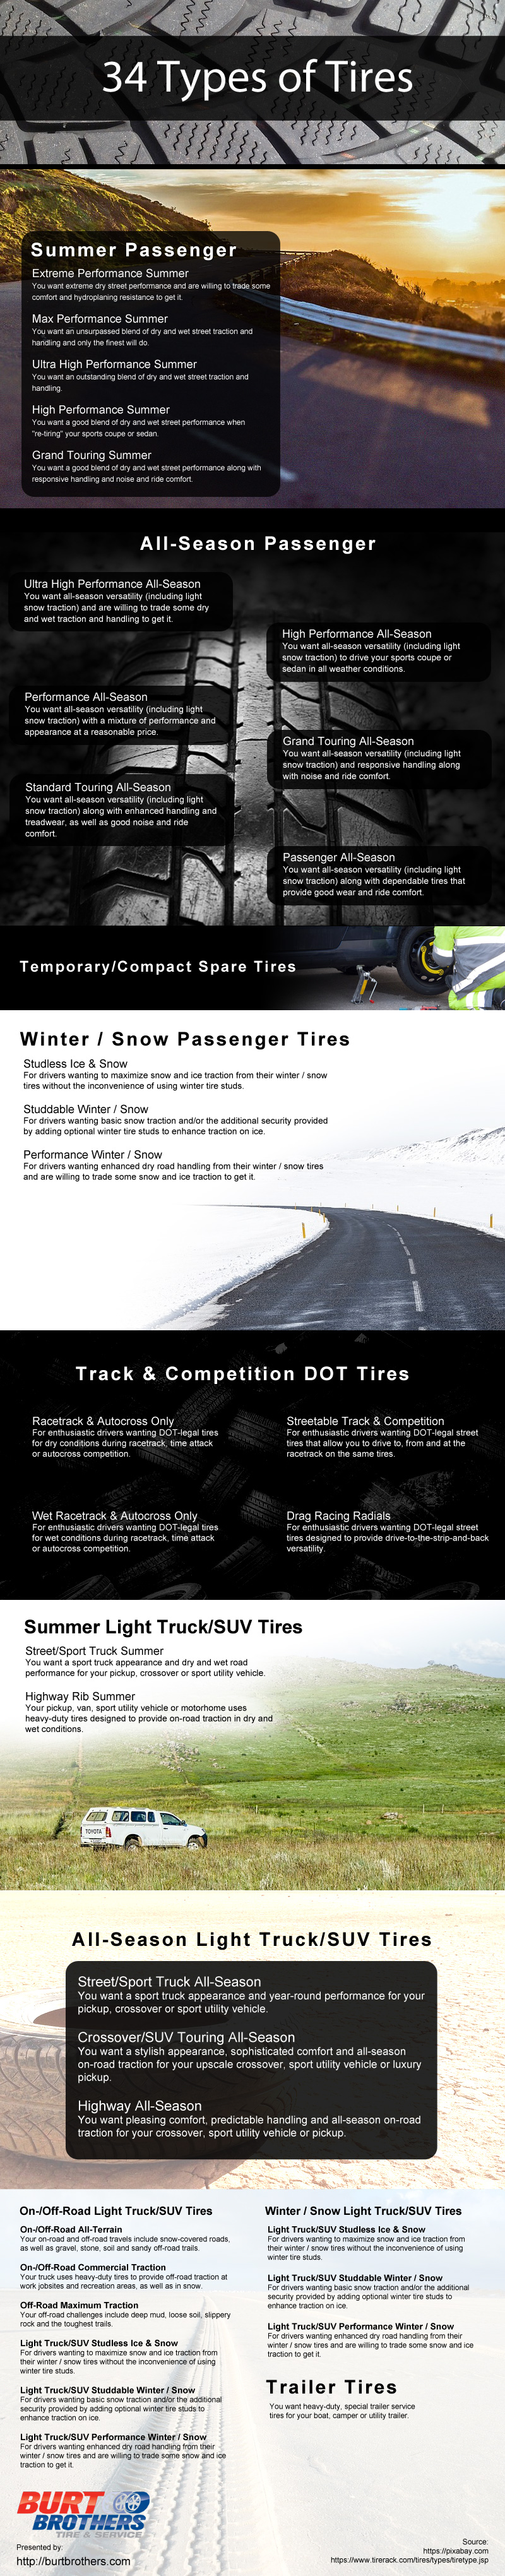 Different Types of Tire [infographic]